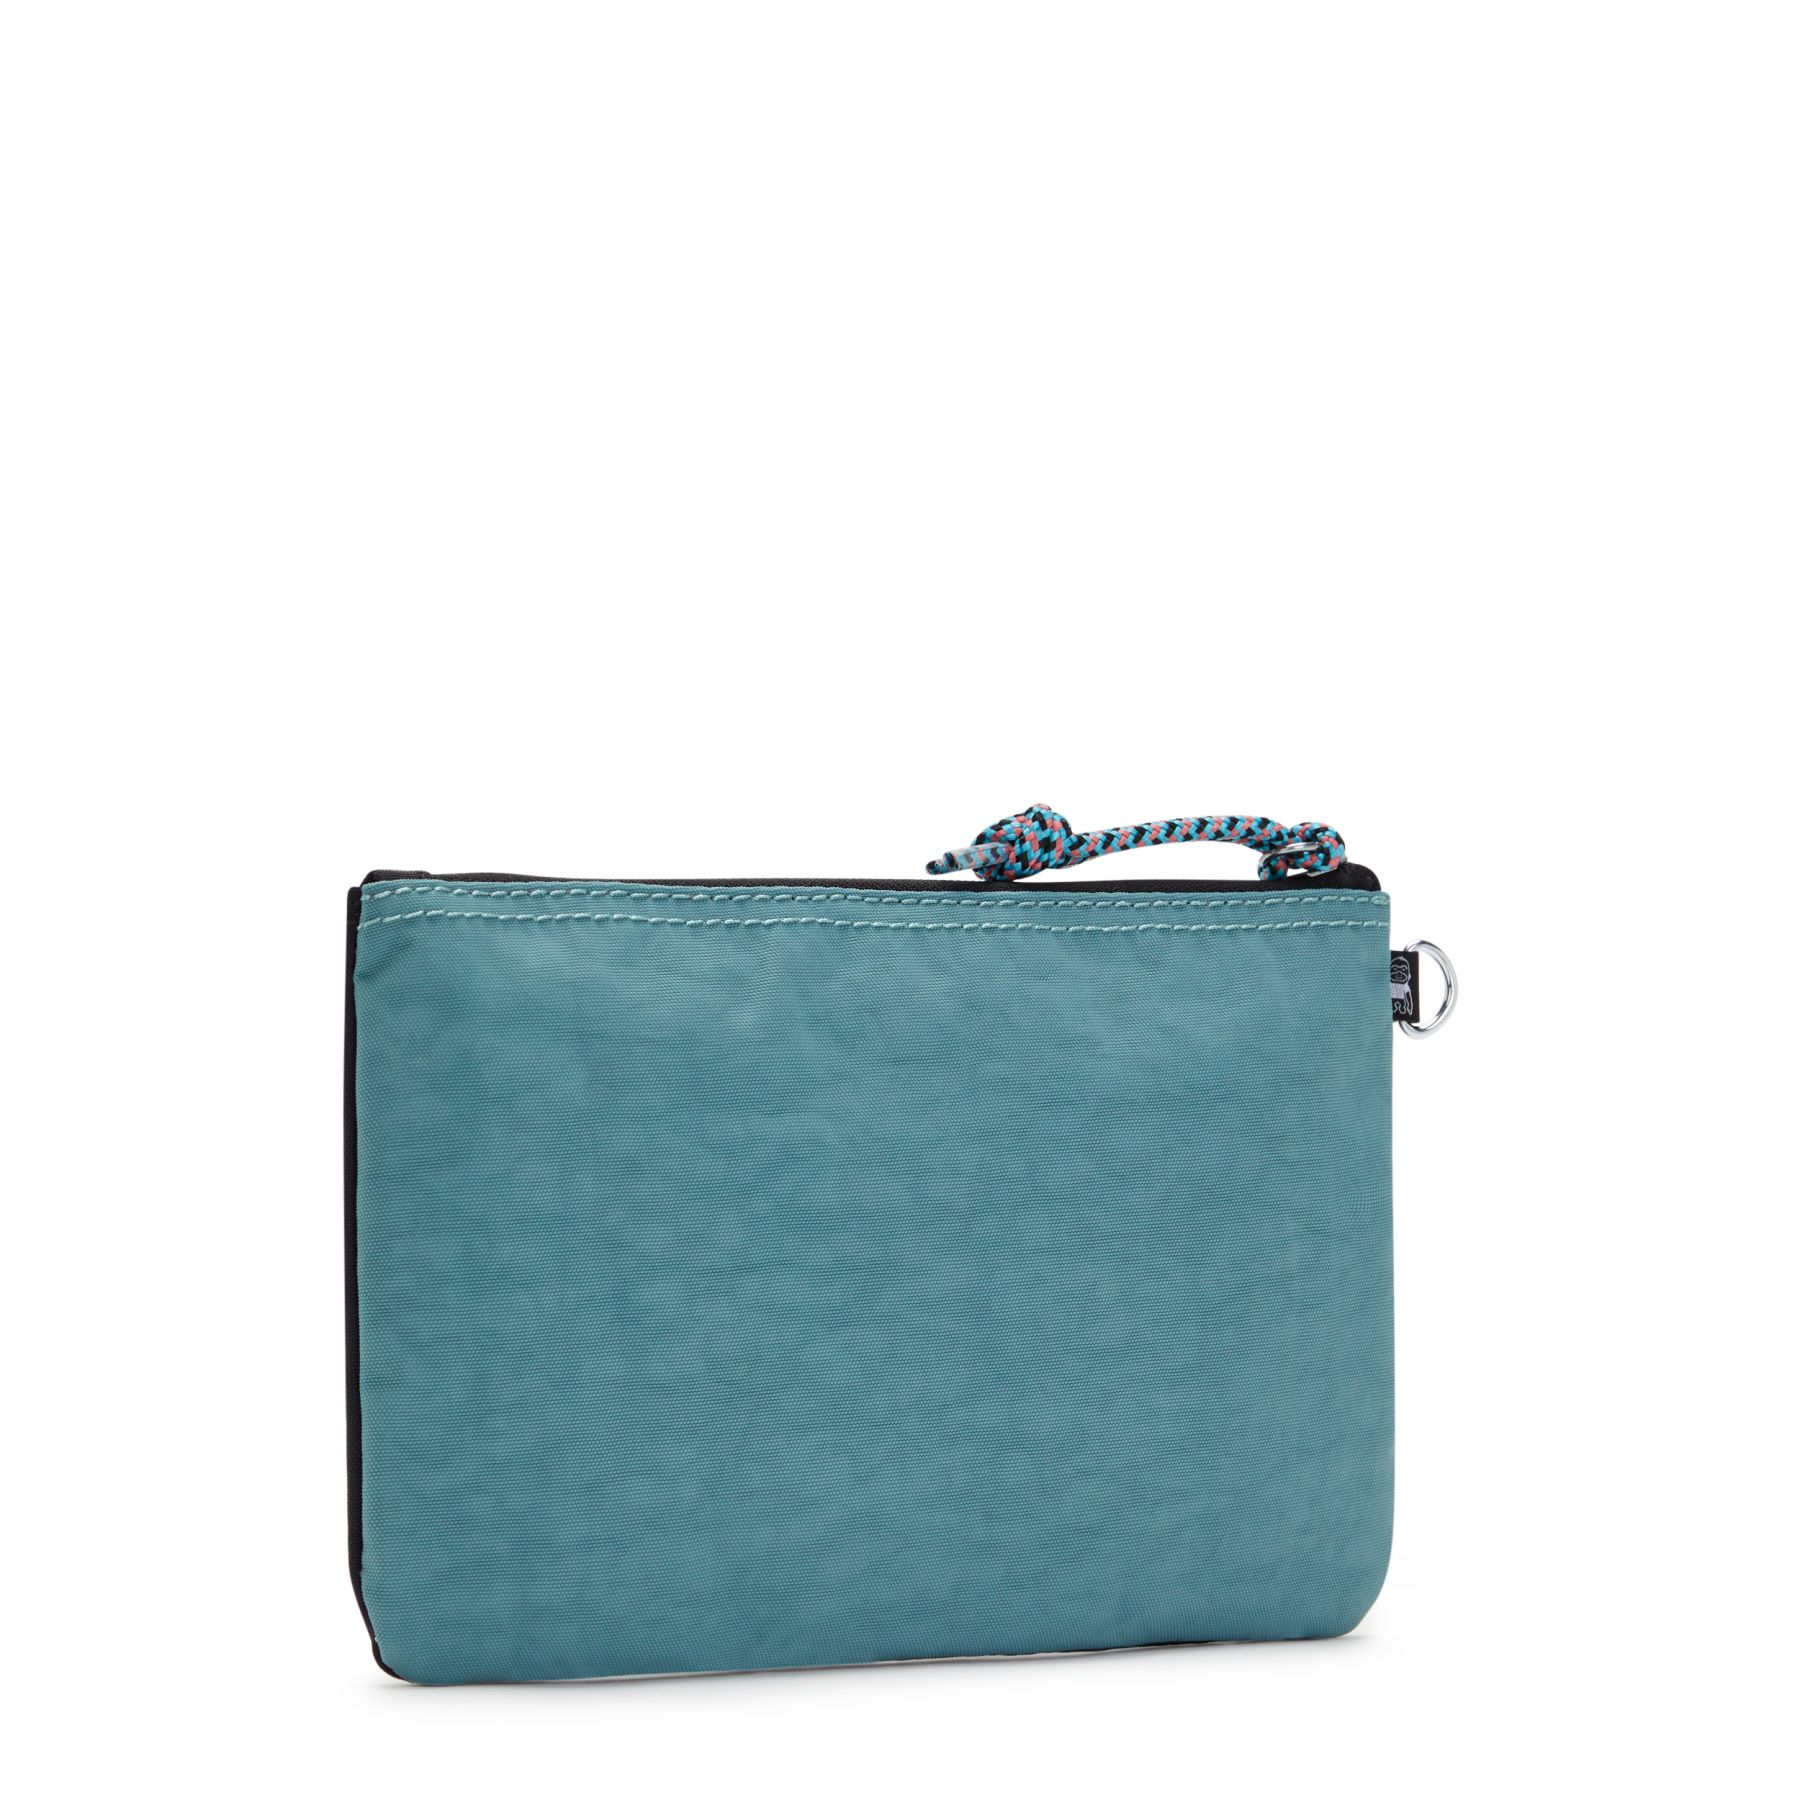 CASUAL POUCH ACCESSORIES by Kipling - Back view